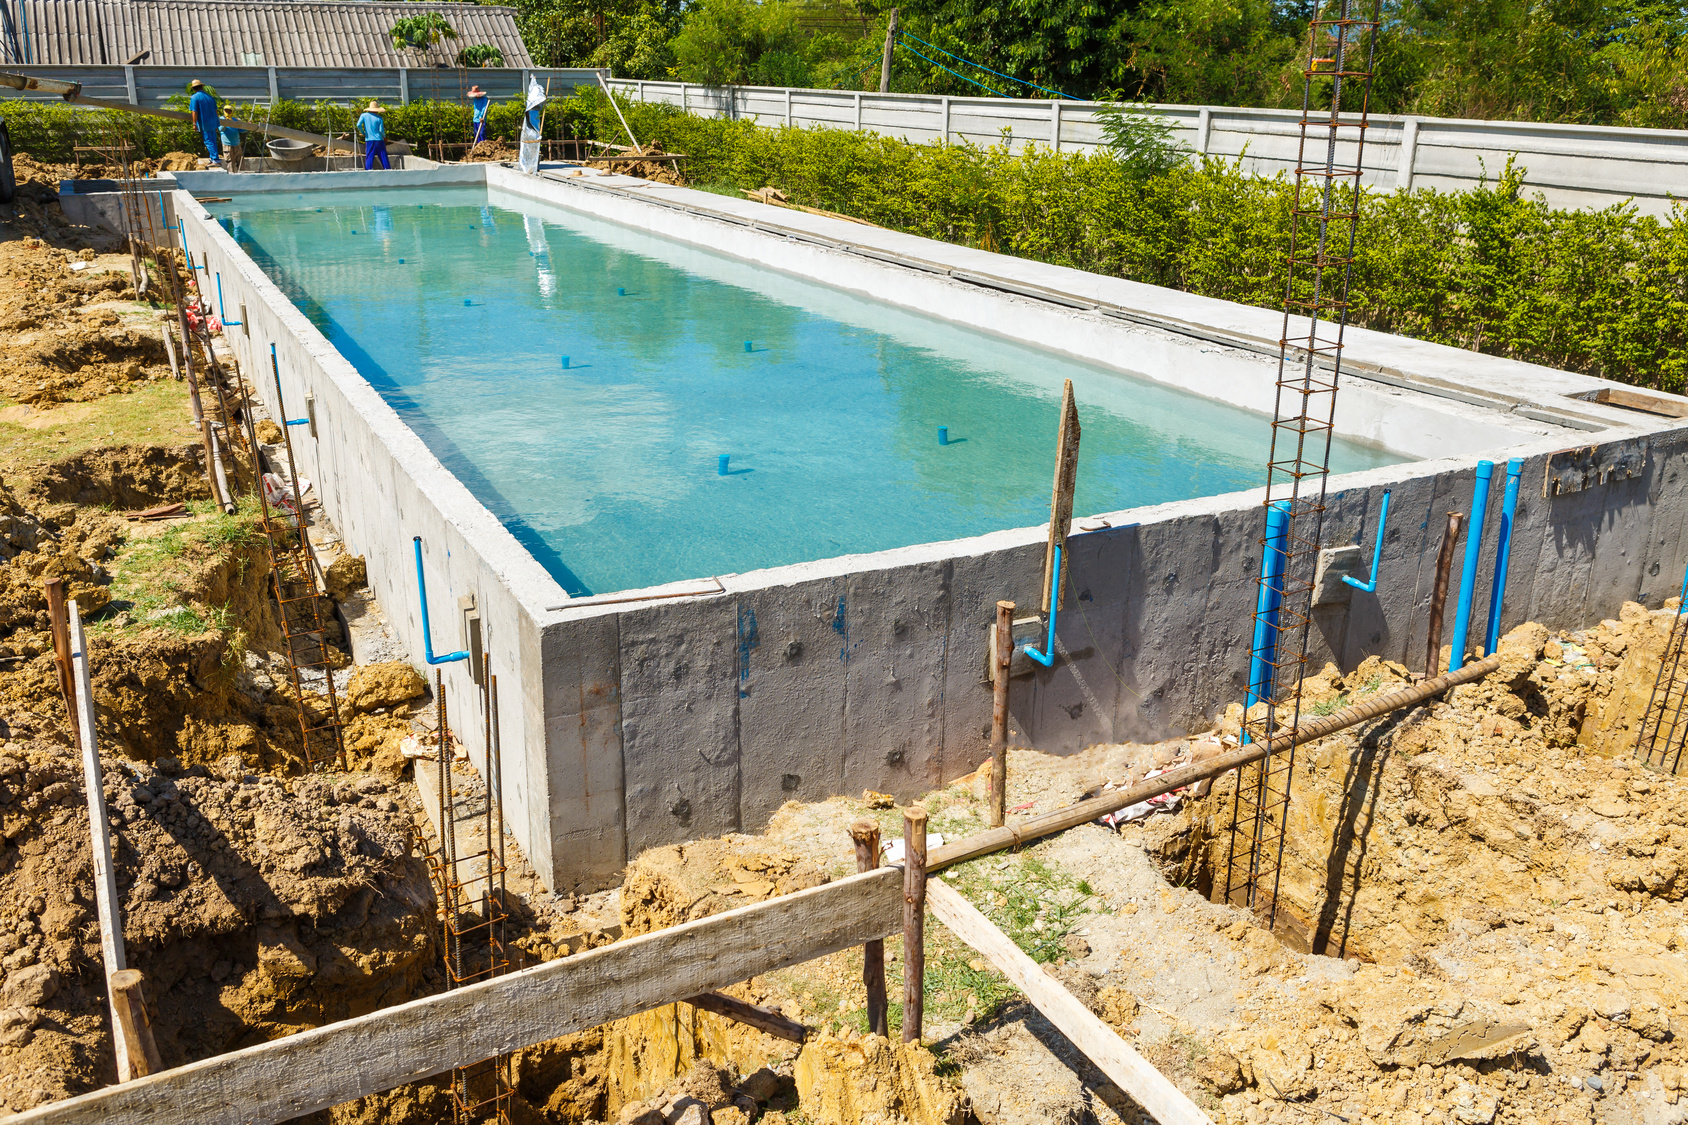 Construire une piscine b ton traditionnelle en kit for Piscine en kit beton